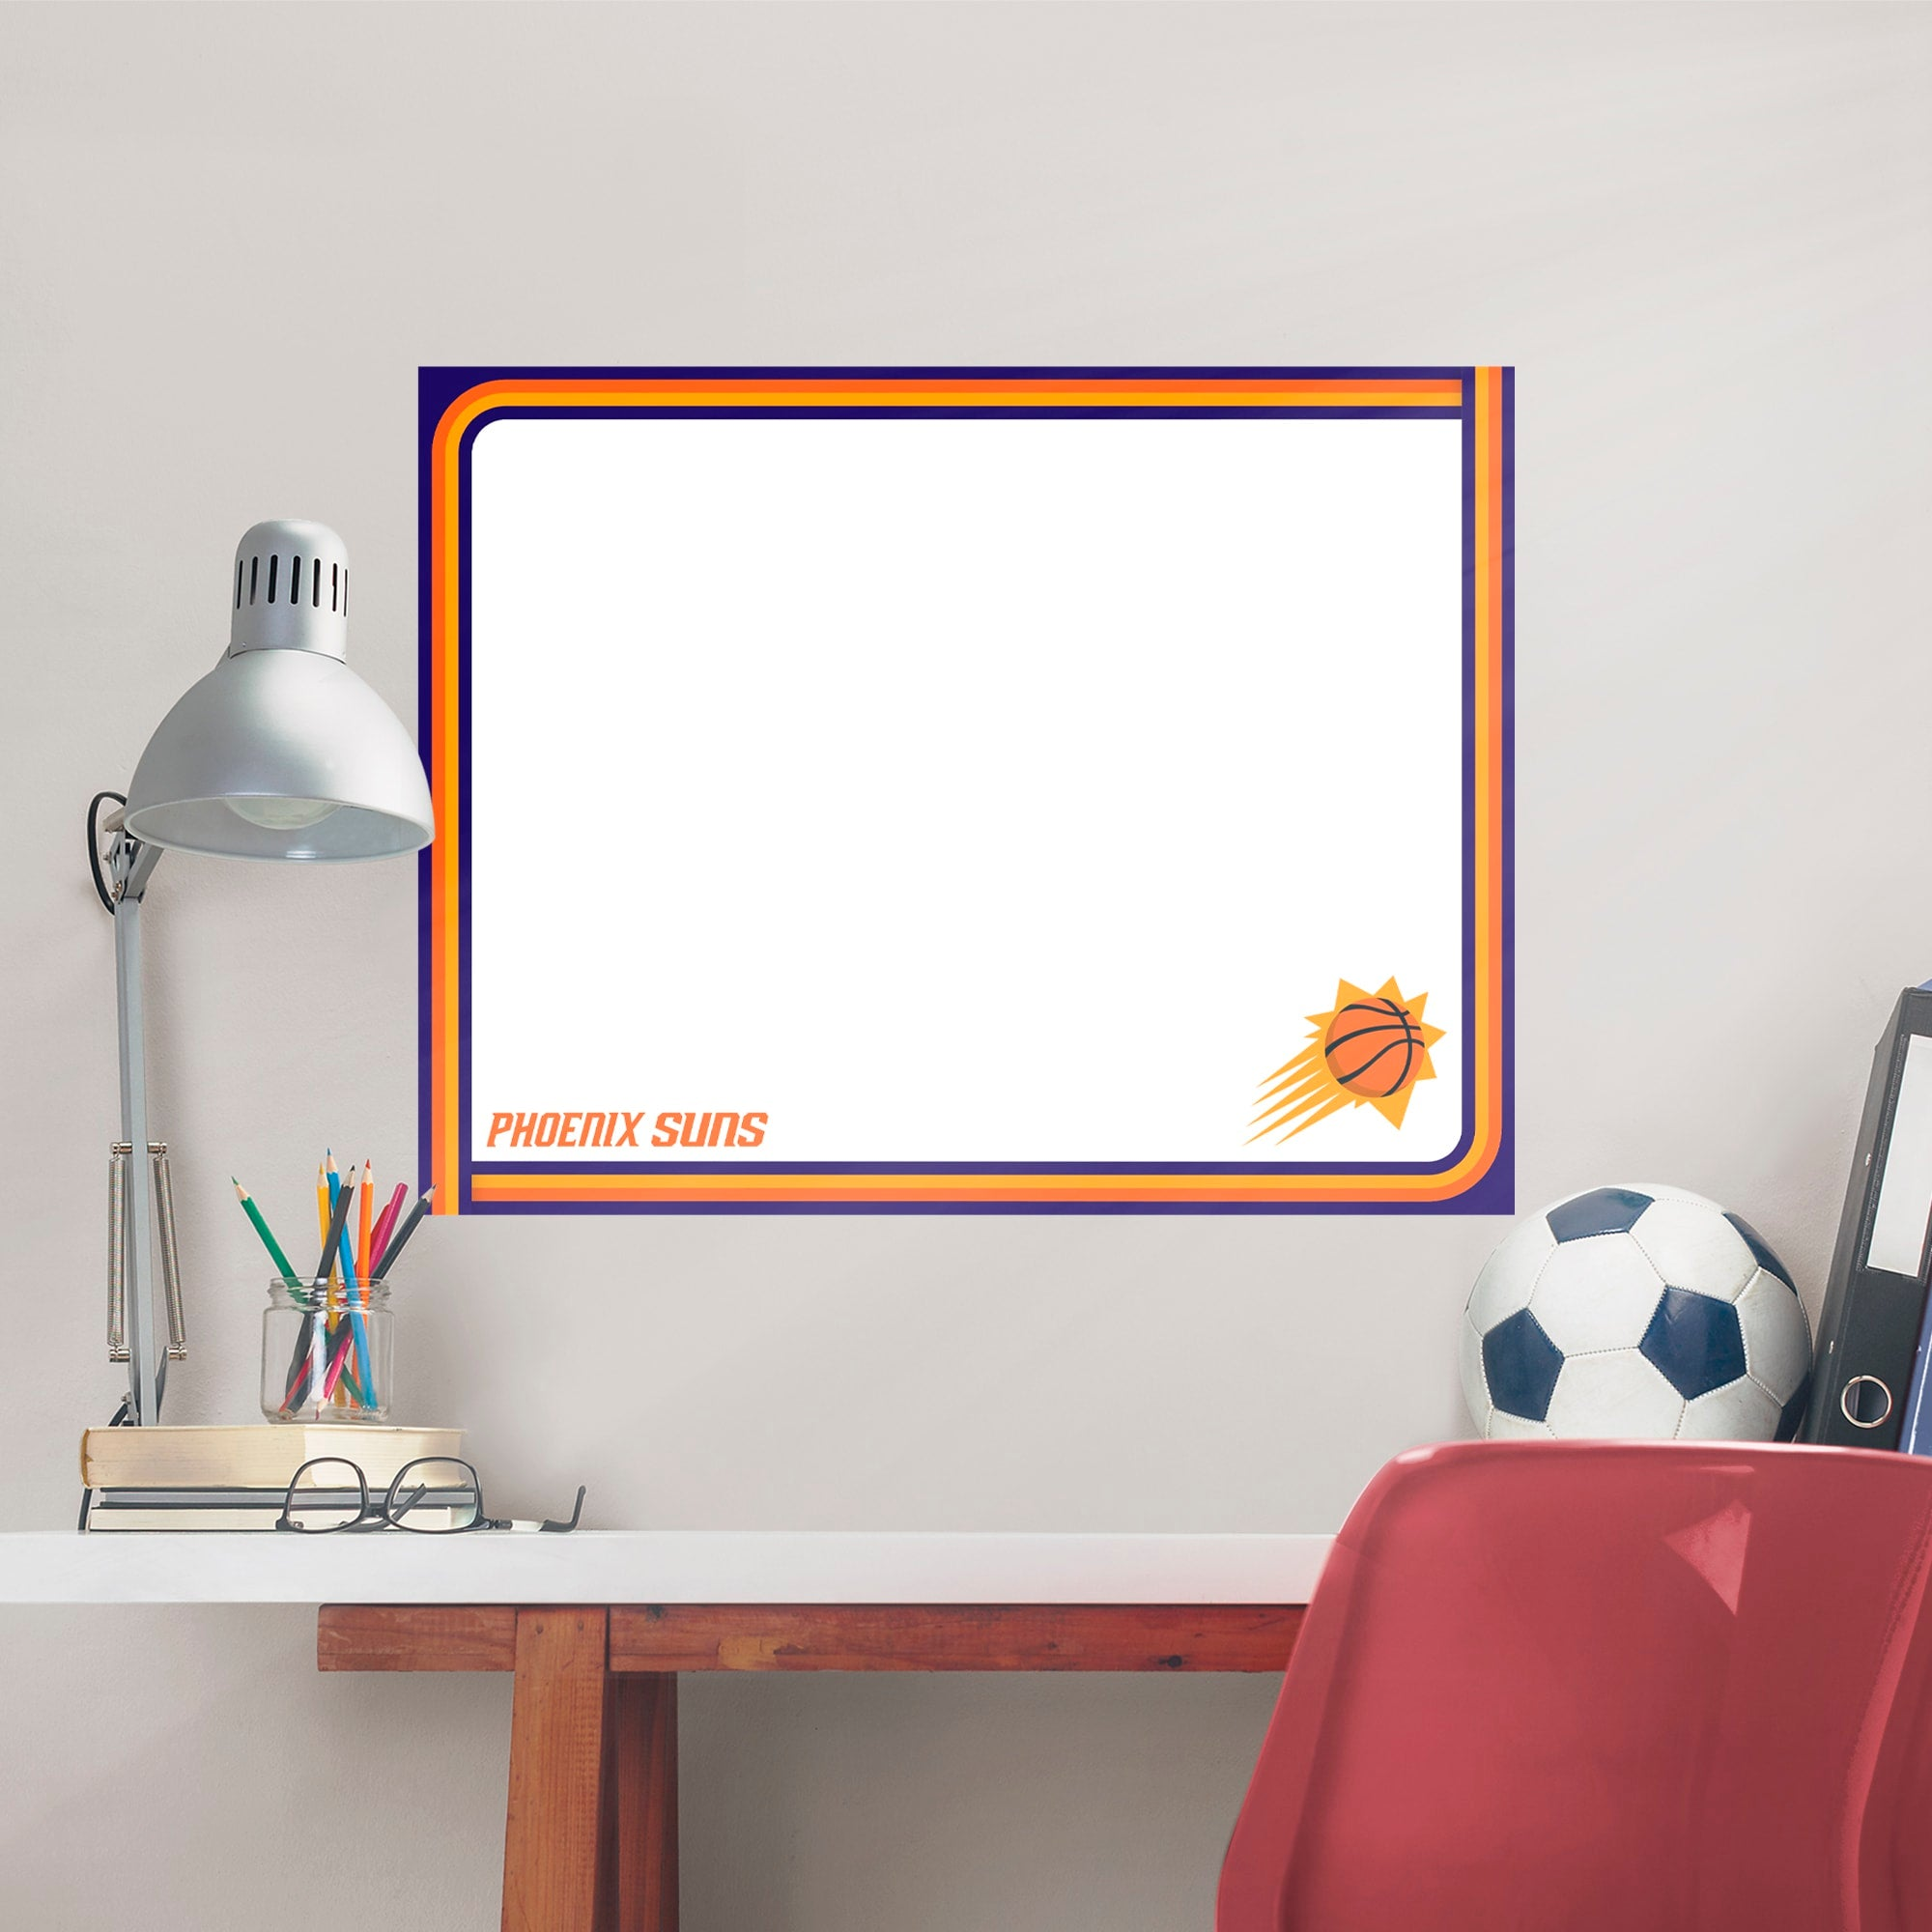 Phoenix Suns for Phoenix Suns: Dry Erase Whiteboard - Officially Licensed NBA Removable Wall Decal XL by Fathead   Vinyl